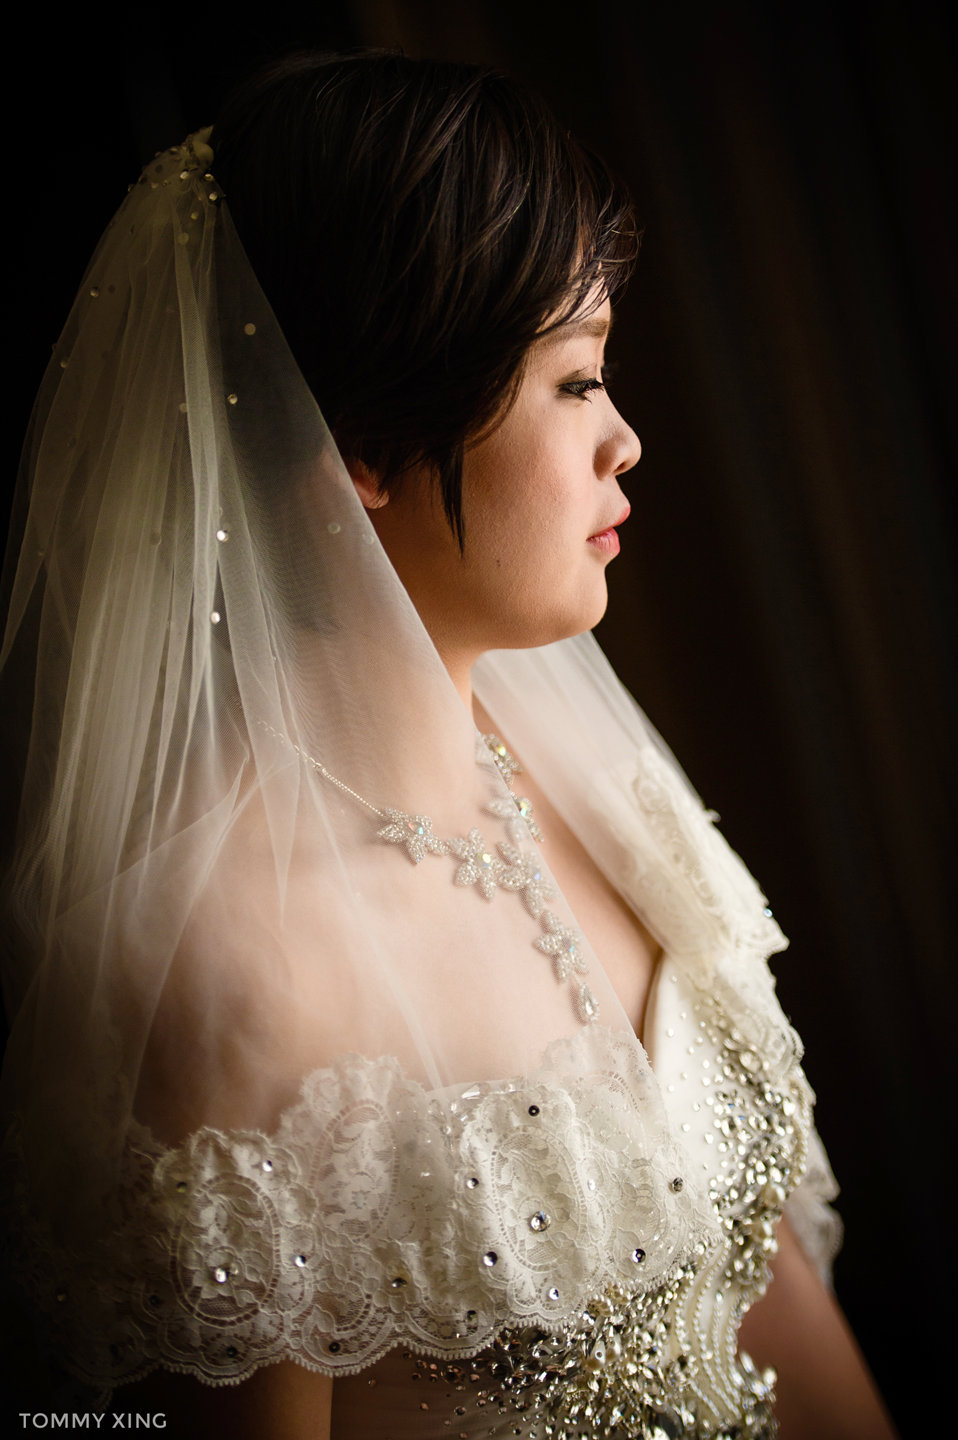 Los Angeles Chinese Wedding Photographer WAYFARERS CHAPEL Tommy Xing 洛杉矶婚礼婚纱摄影 035.jpg